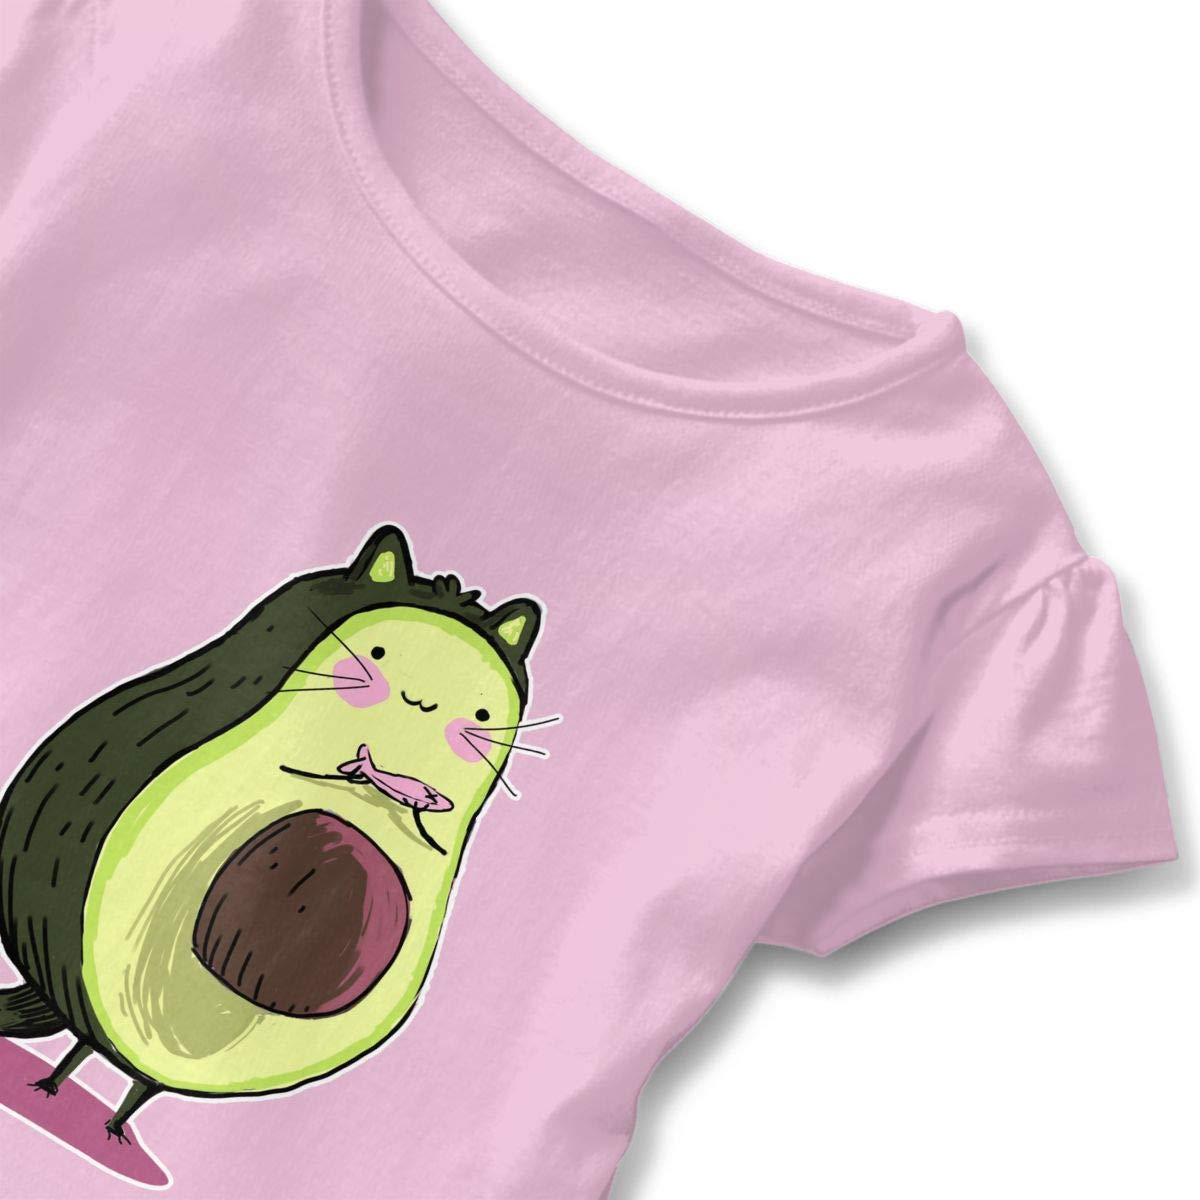 Avocuddled Cute Cat Toddler Ruffle T-Shirt Cotton Tees for 2-6T